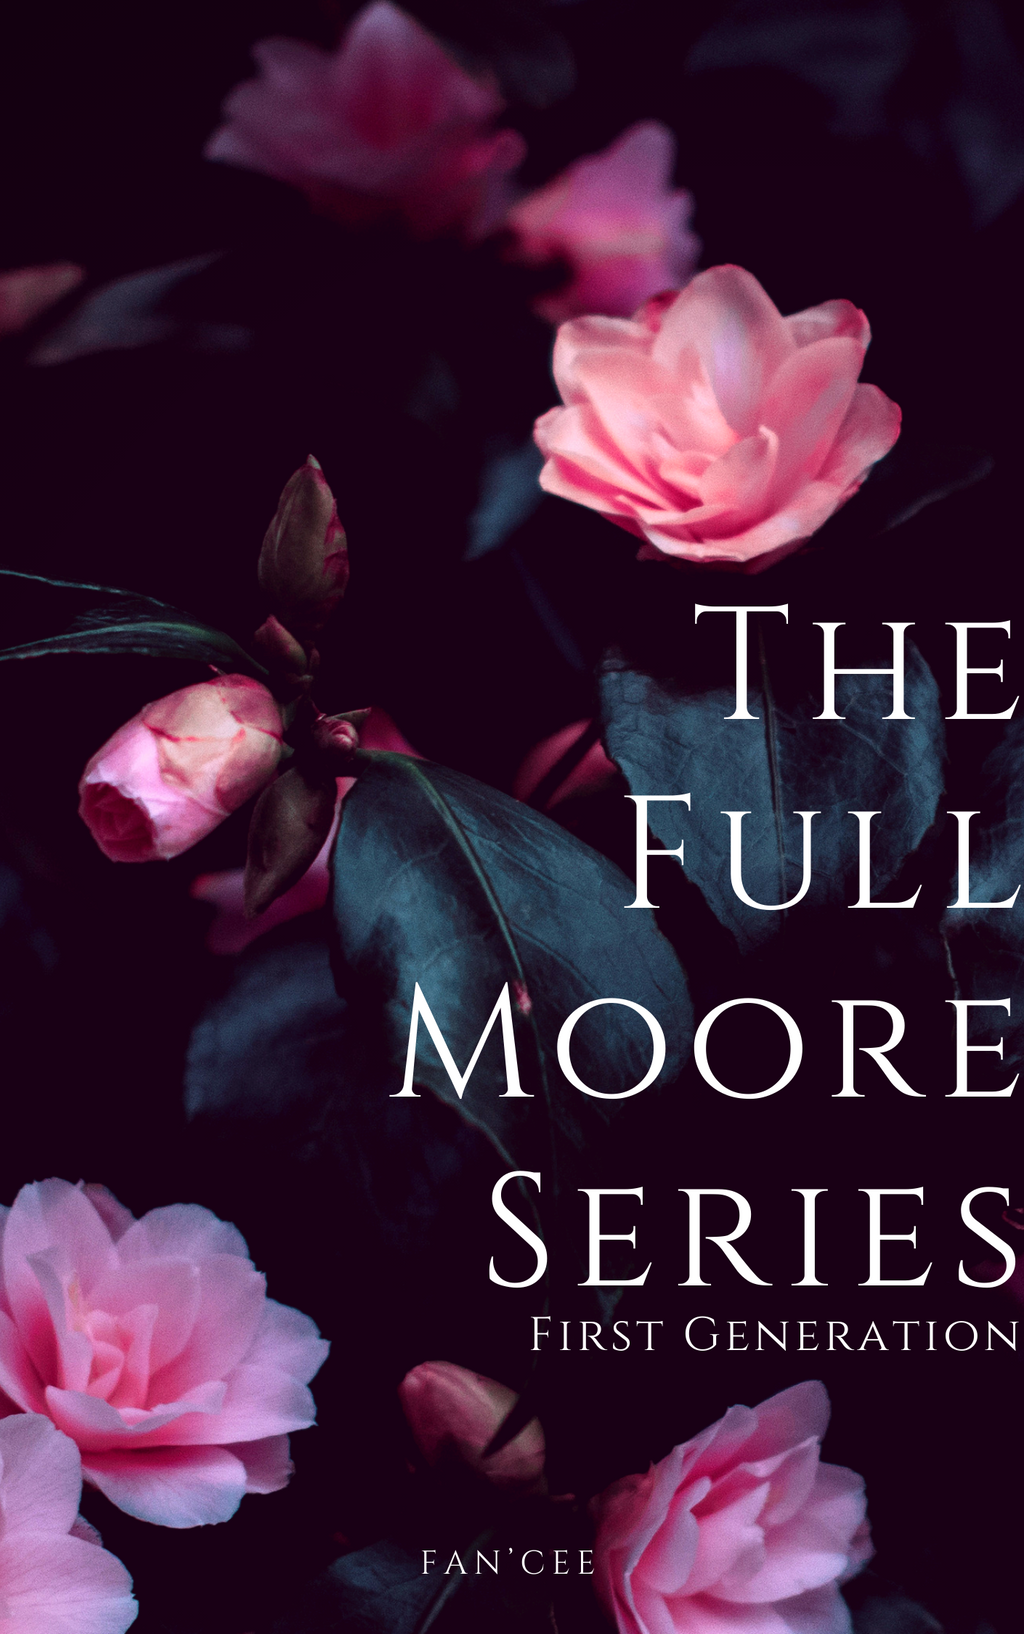 Full First Generation Moore Series (Four Books Included)